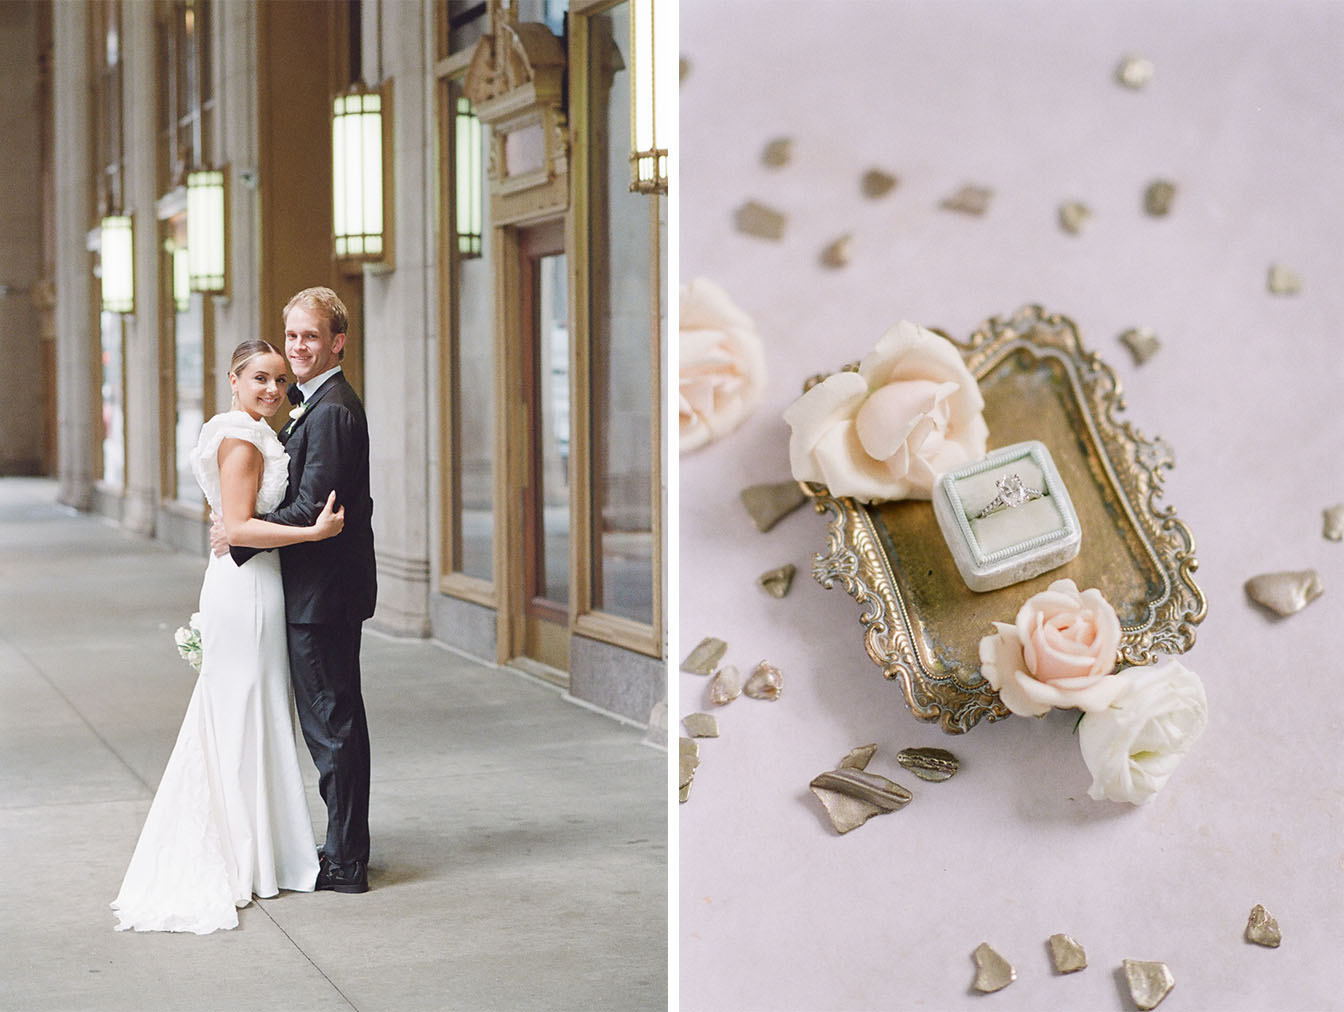 Engagement ring placed into Mrs Box on gold tray